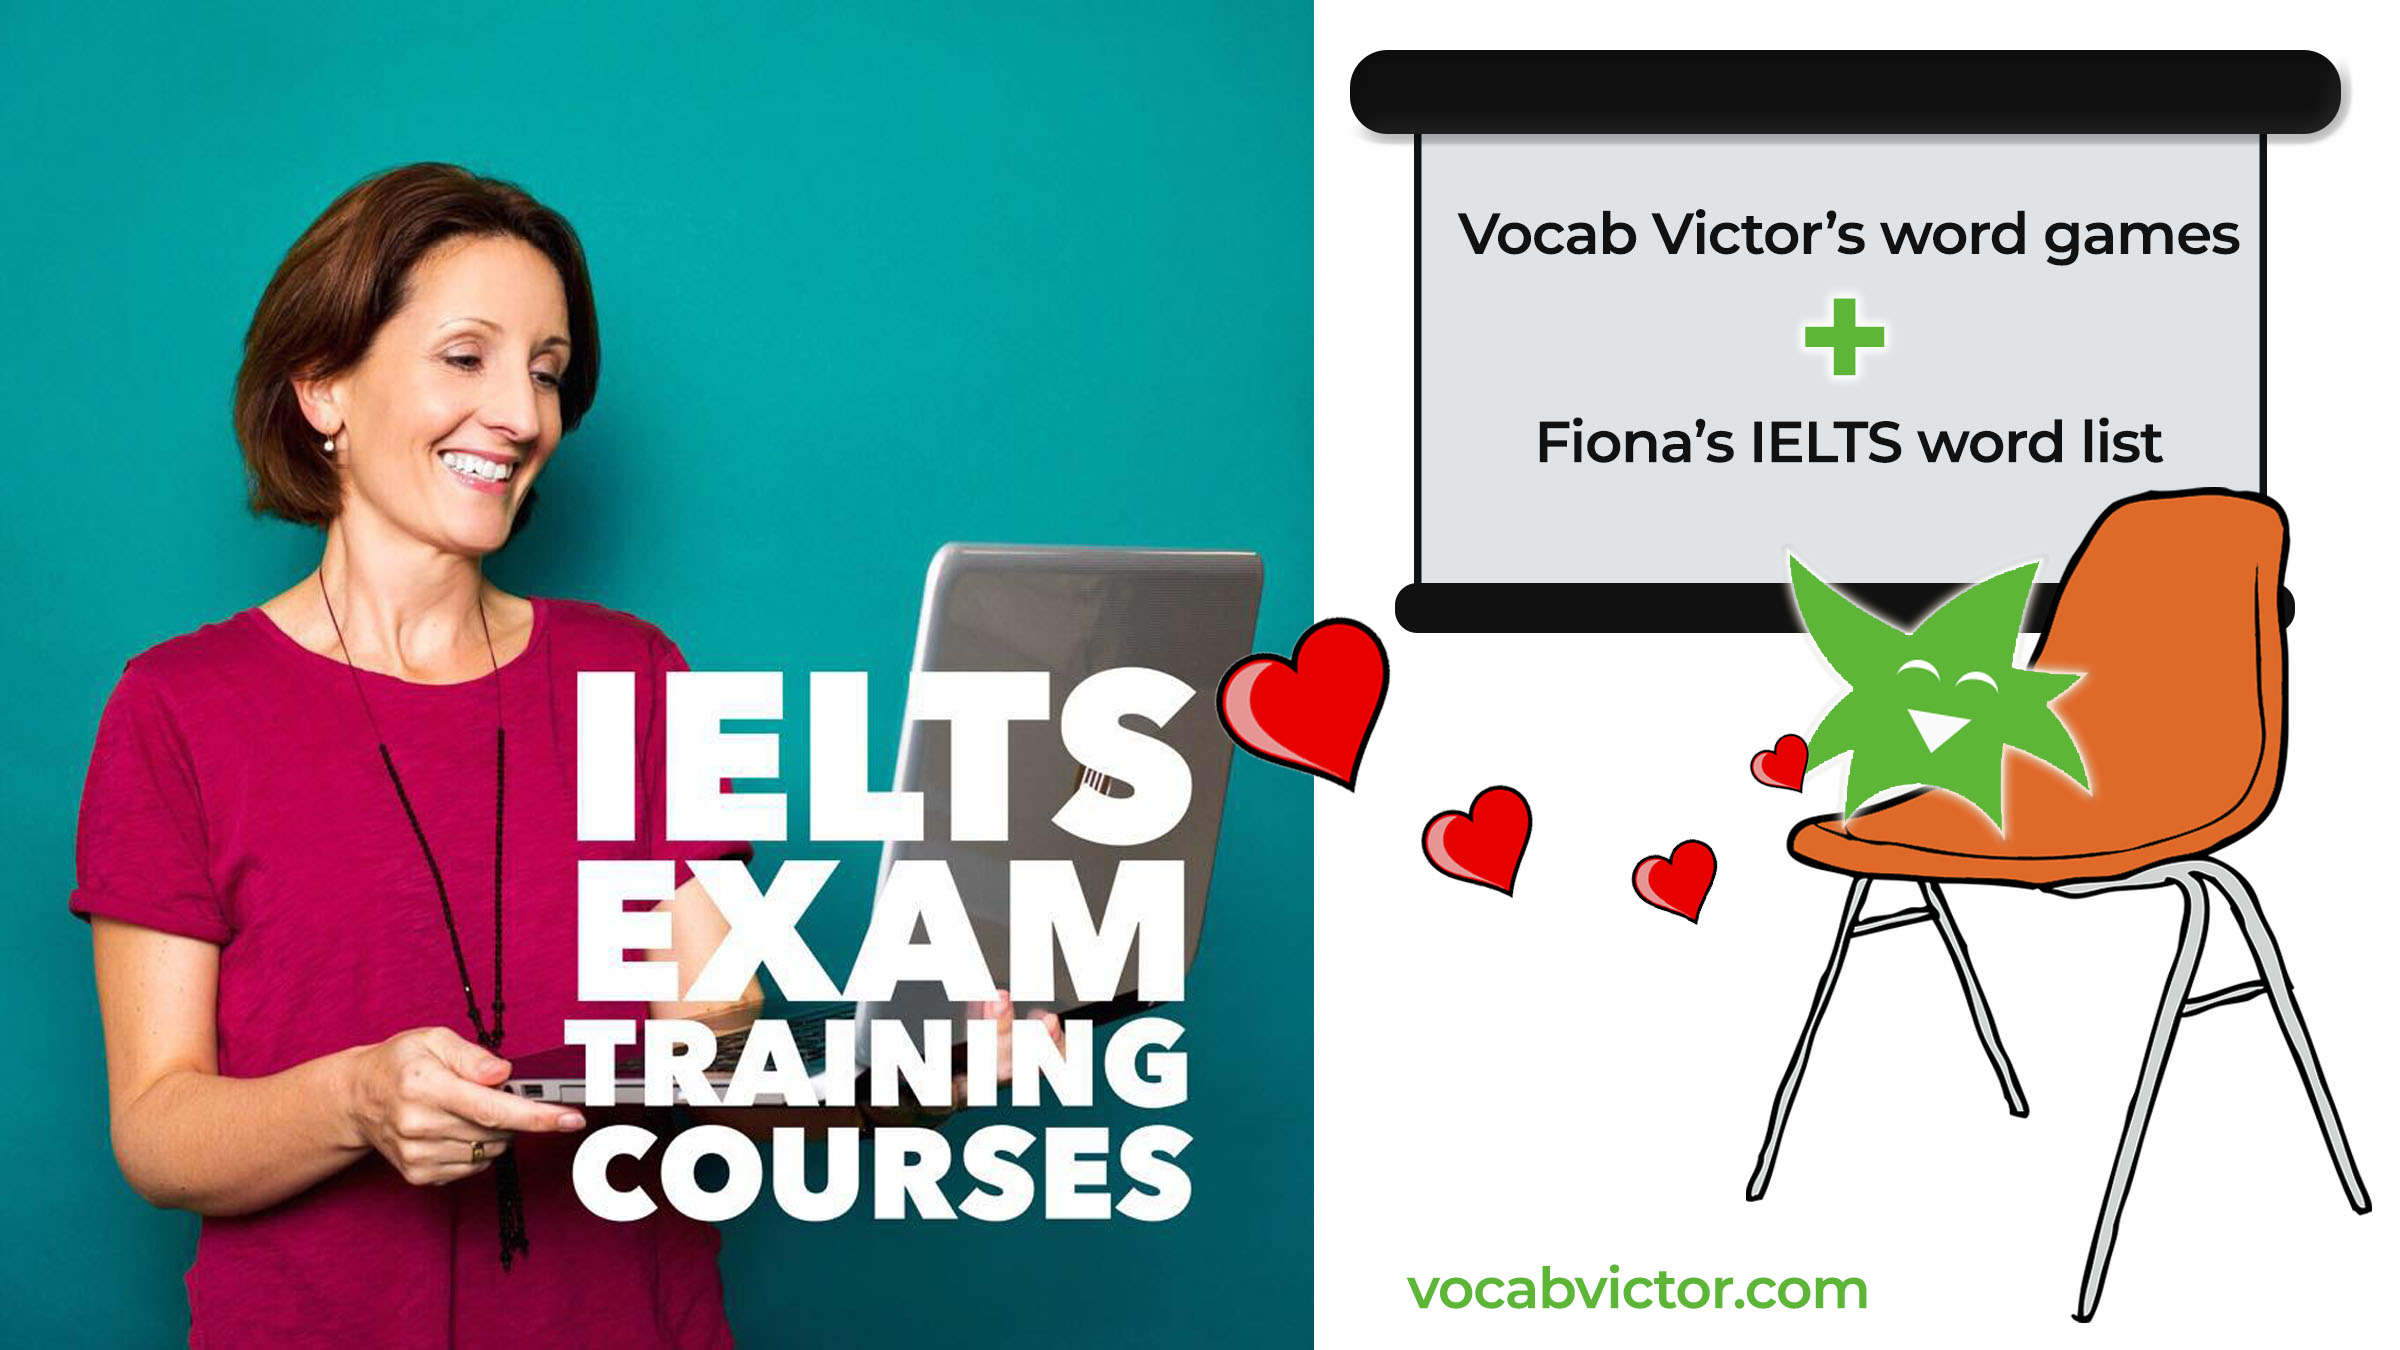 Vocab Victor teams with IELTS with Fiona